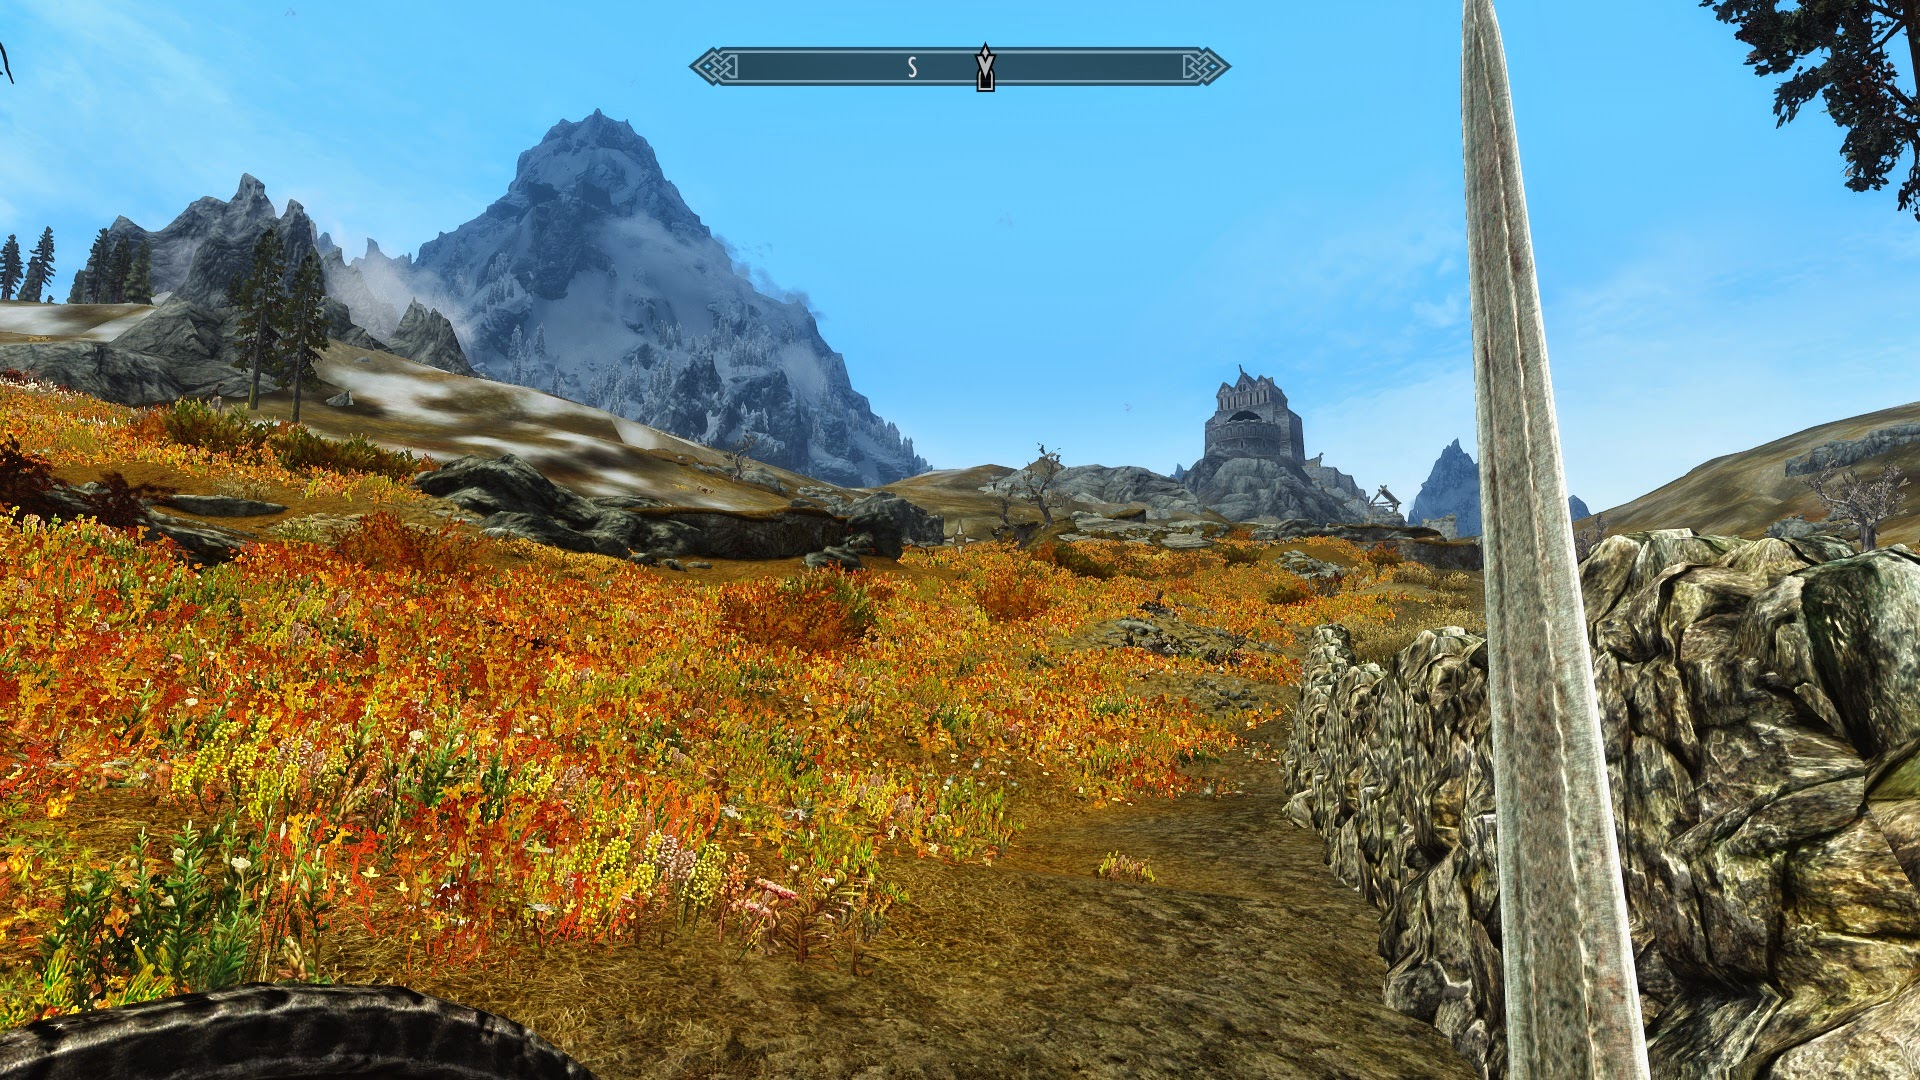 skyrim flora overhaul looks ugly in realvision enb - Skyrim